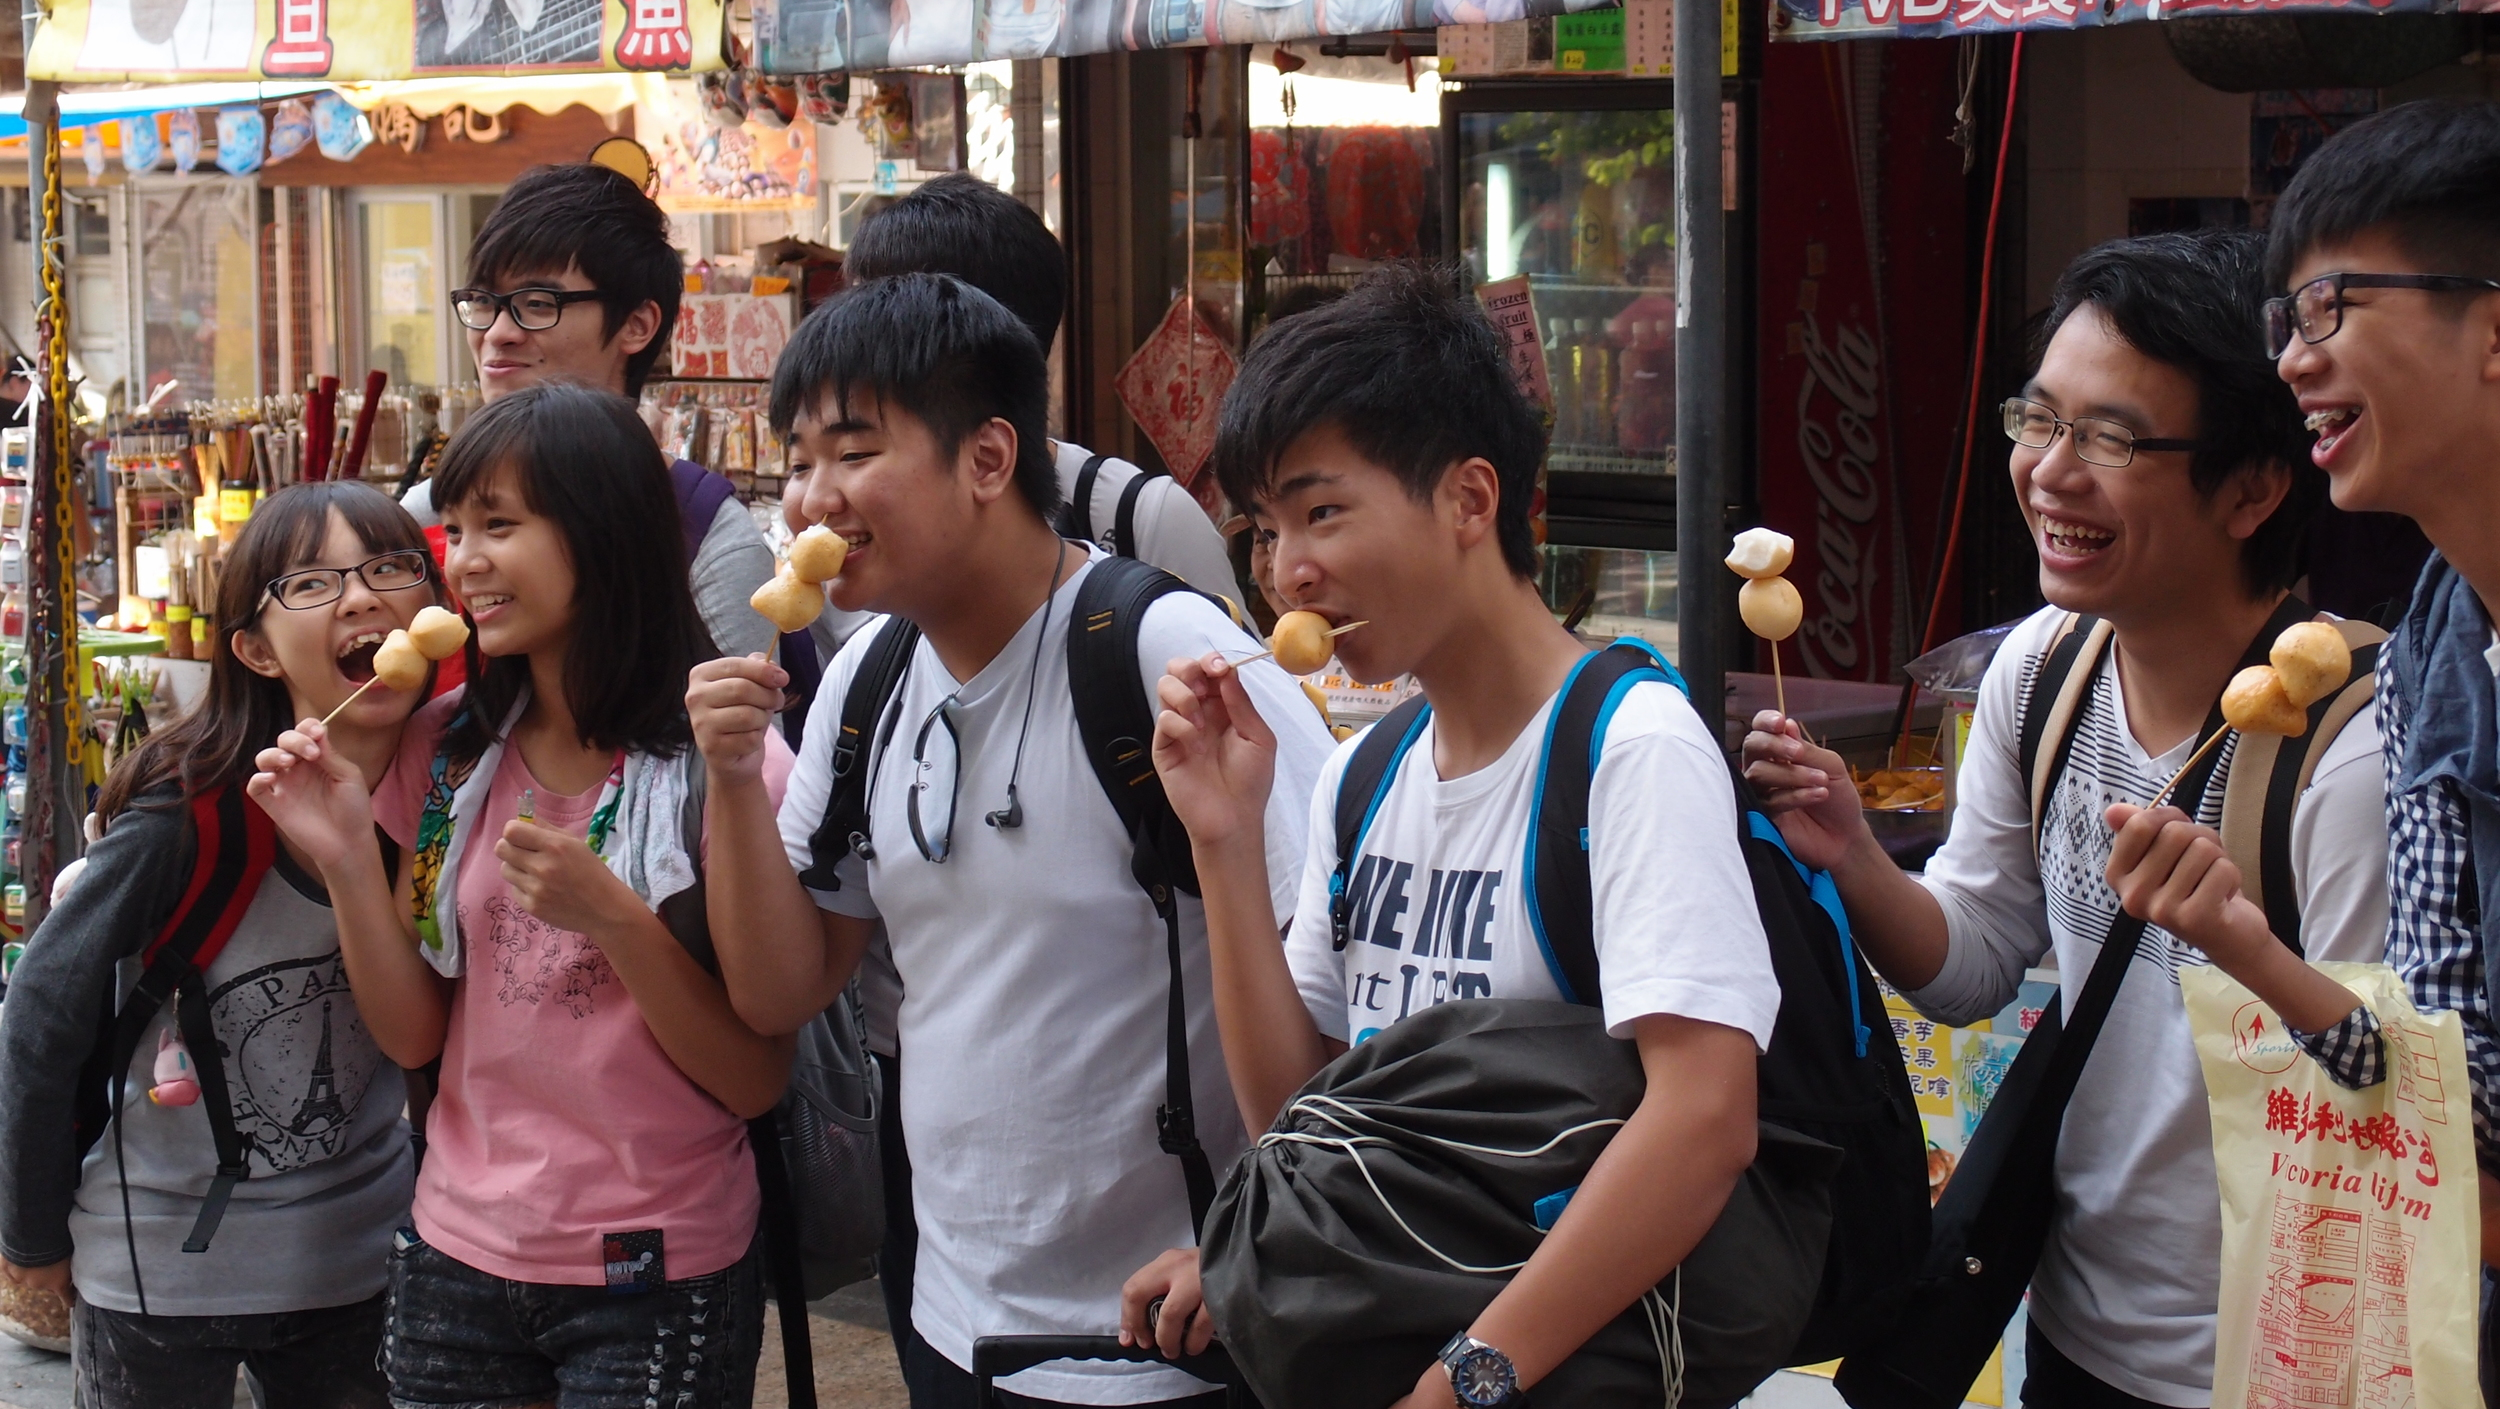 There is a fishball stall on Cheung Chau Island that is mobbed by many people, obviously there is a secret ingredient in   his   fishballs